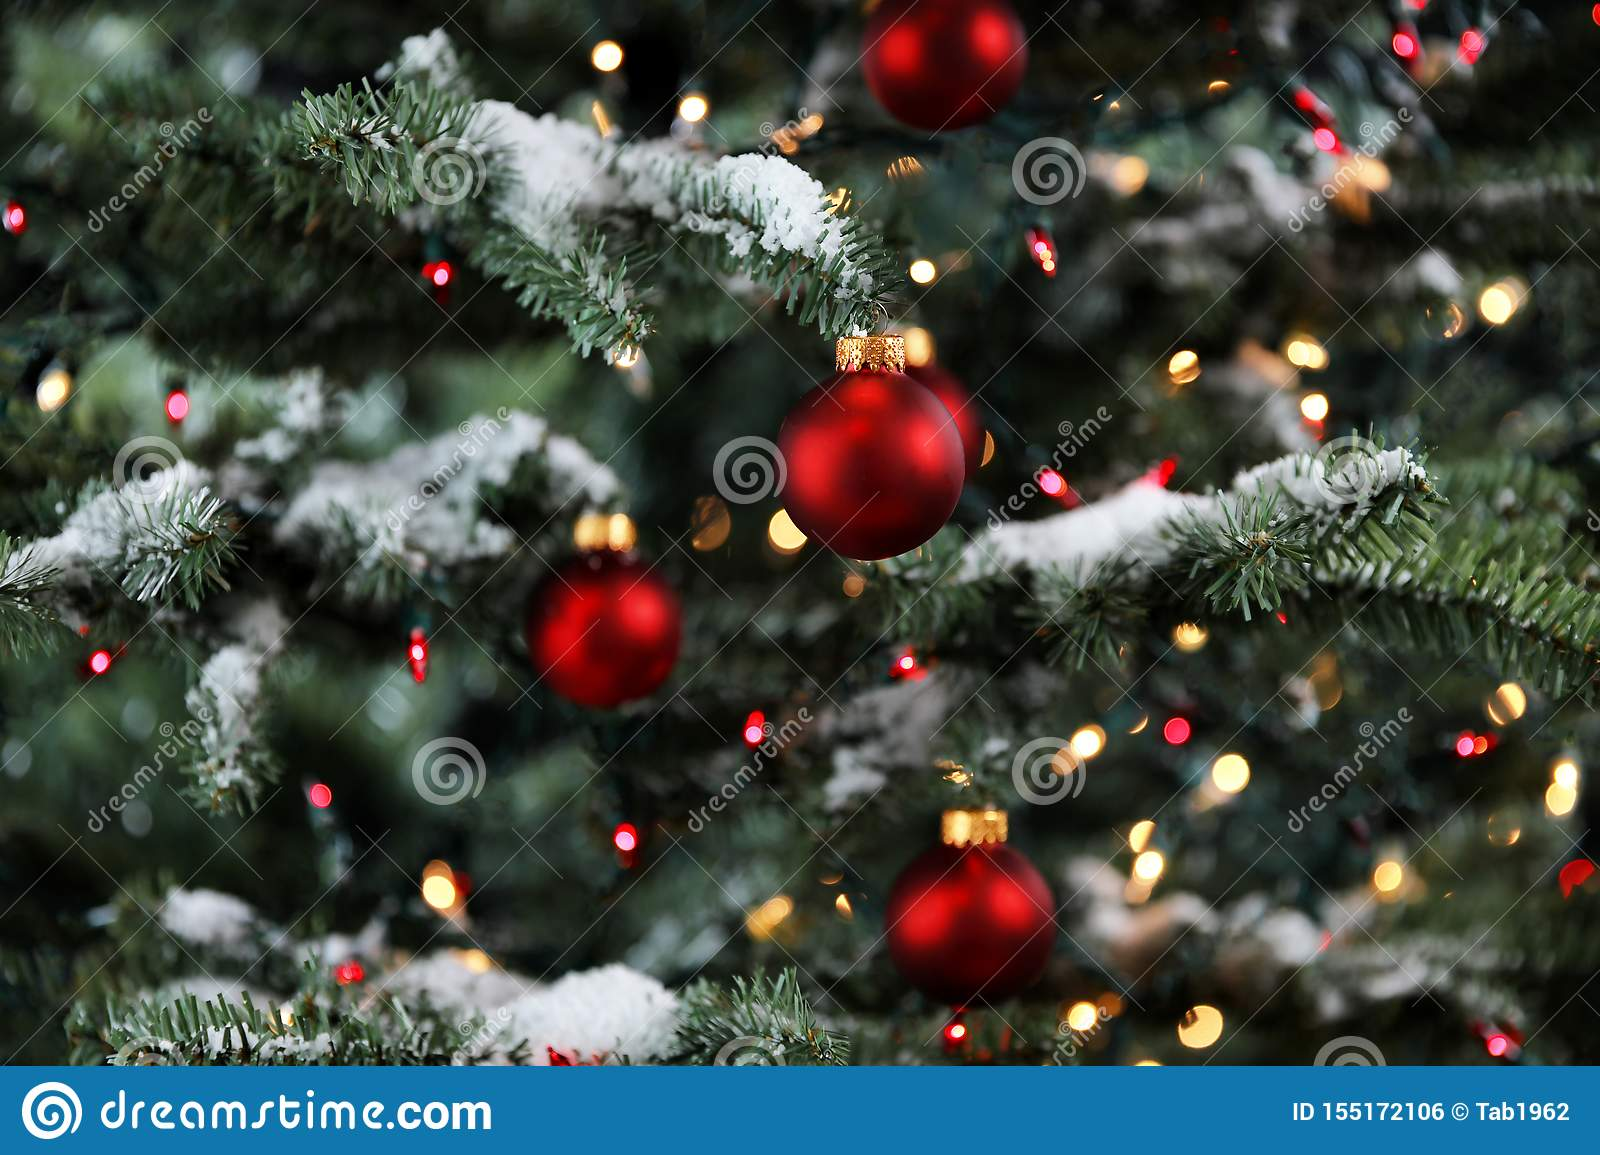 Snowy Glowing Christmas Tree Decorated With Red And Gold Ornament Balls Stock Photo Image Of Ornament Decorate 155172106